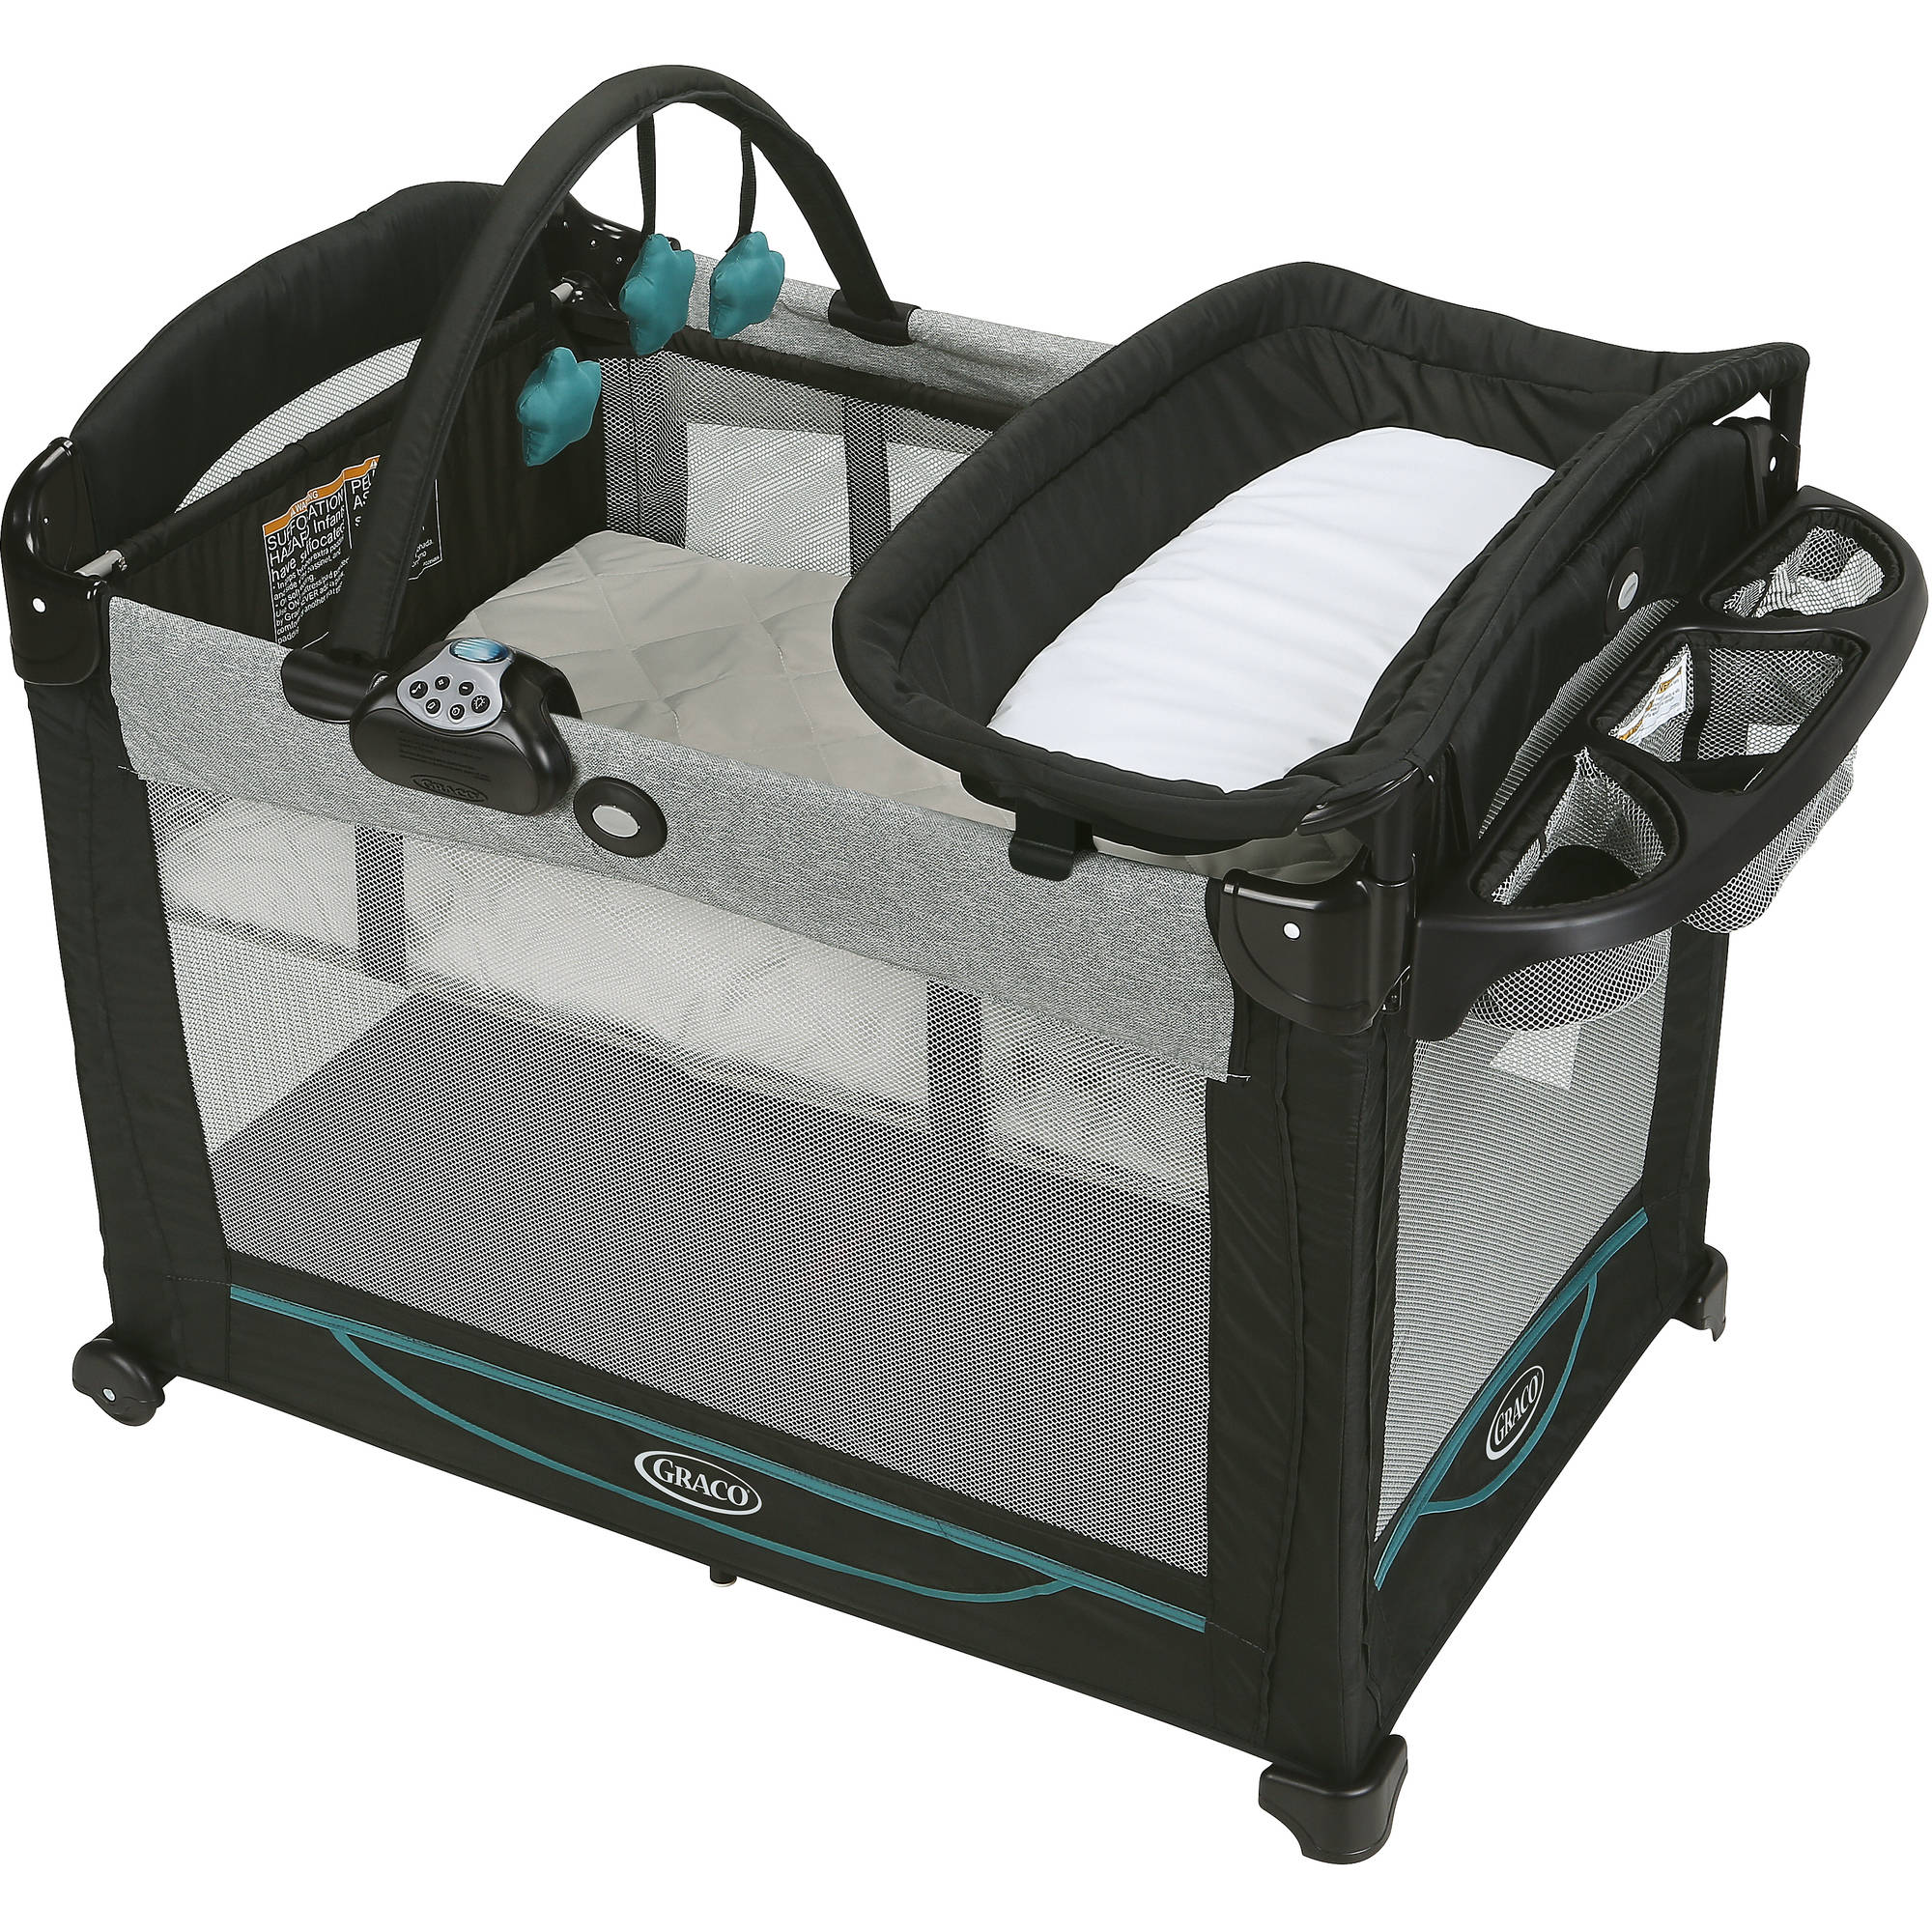 Graco Pack 'n Play Element Play Pen with Bassinet, Darcie by Graco